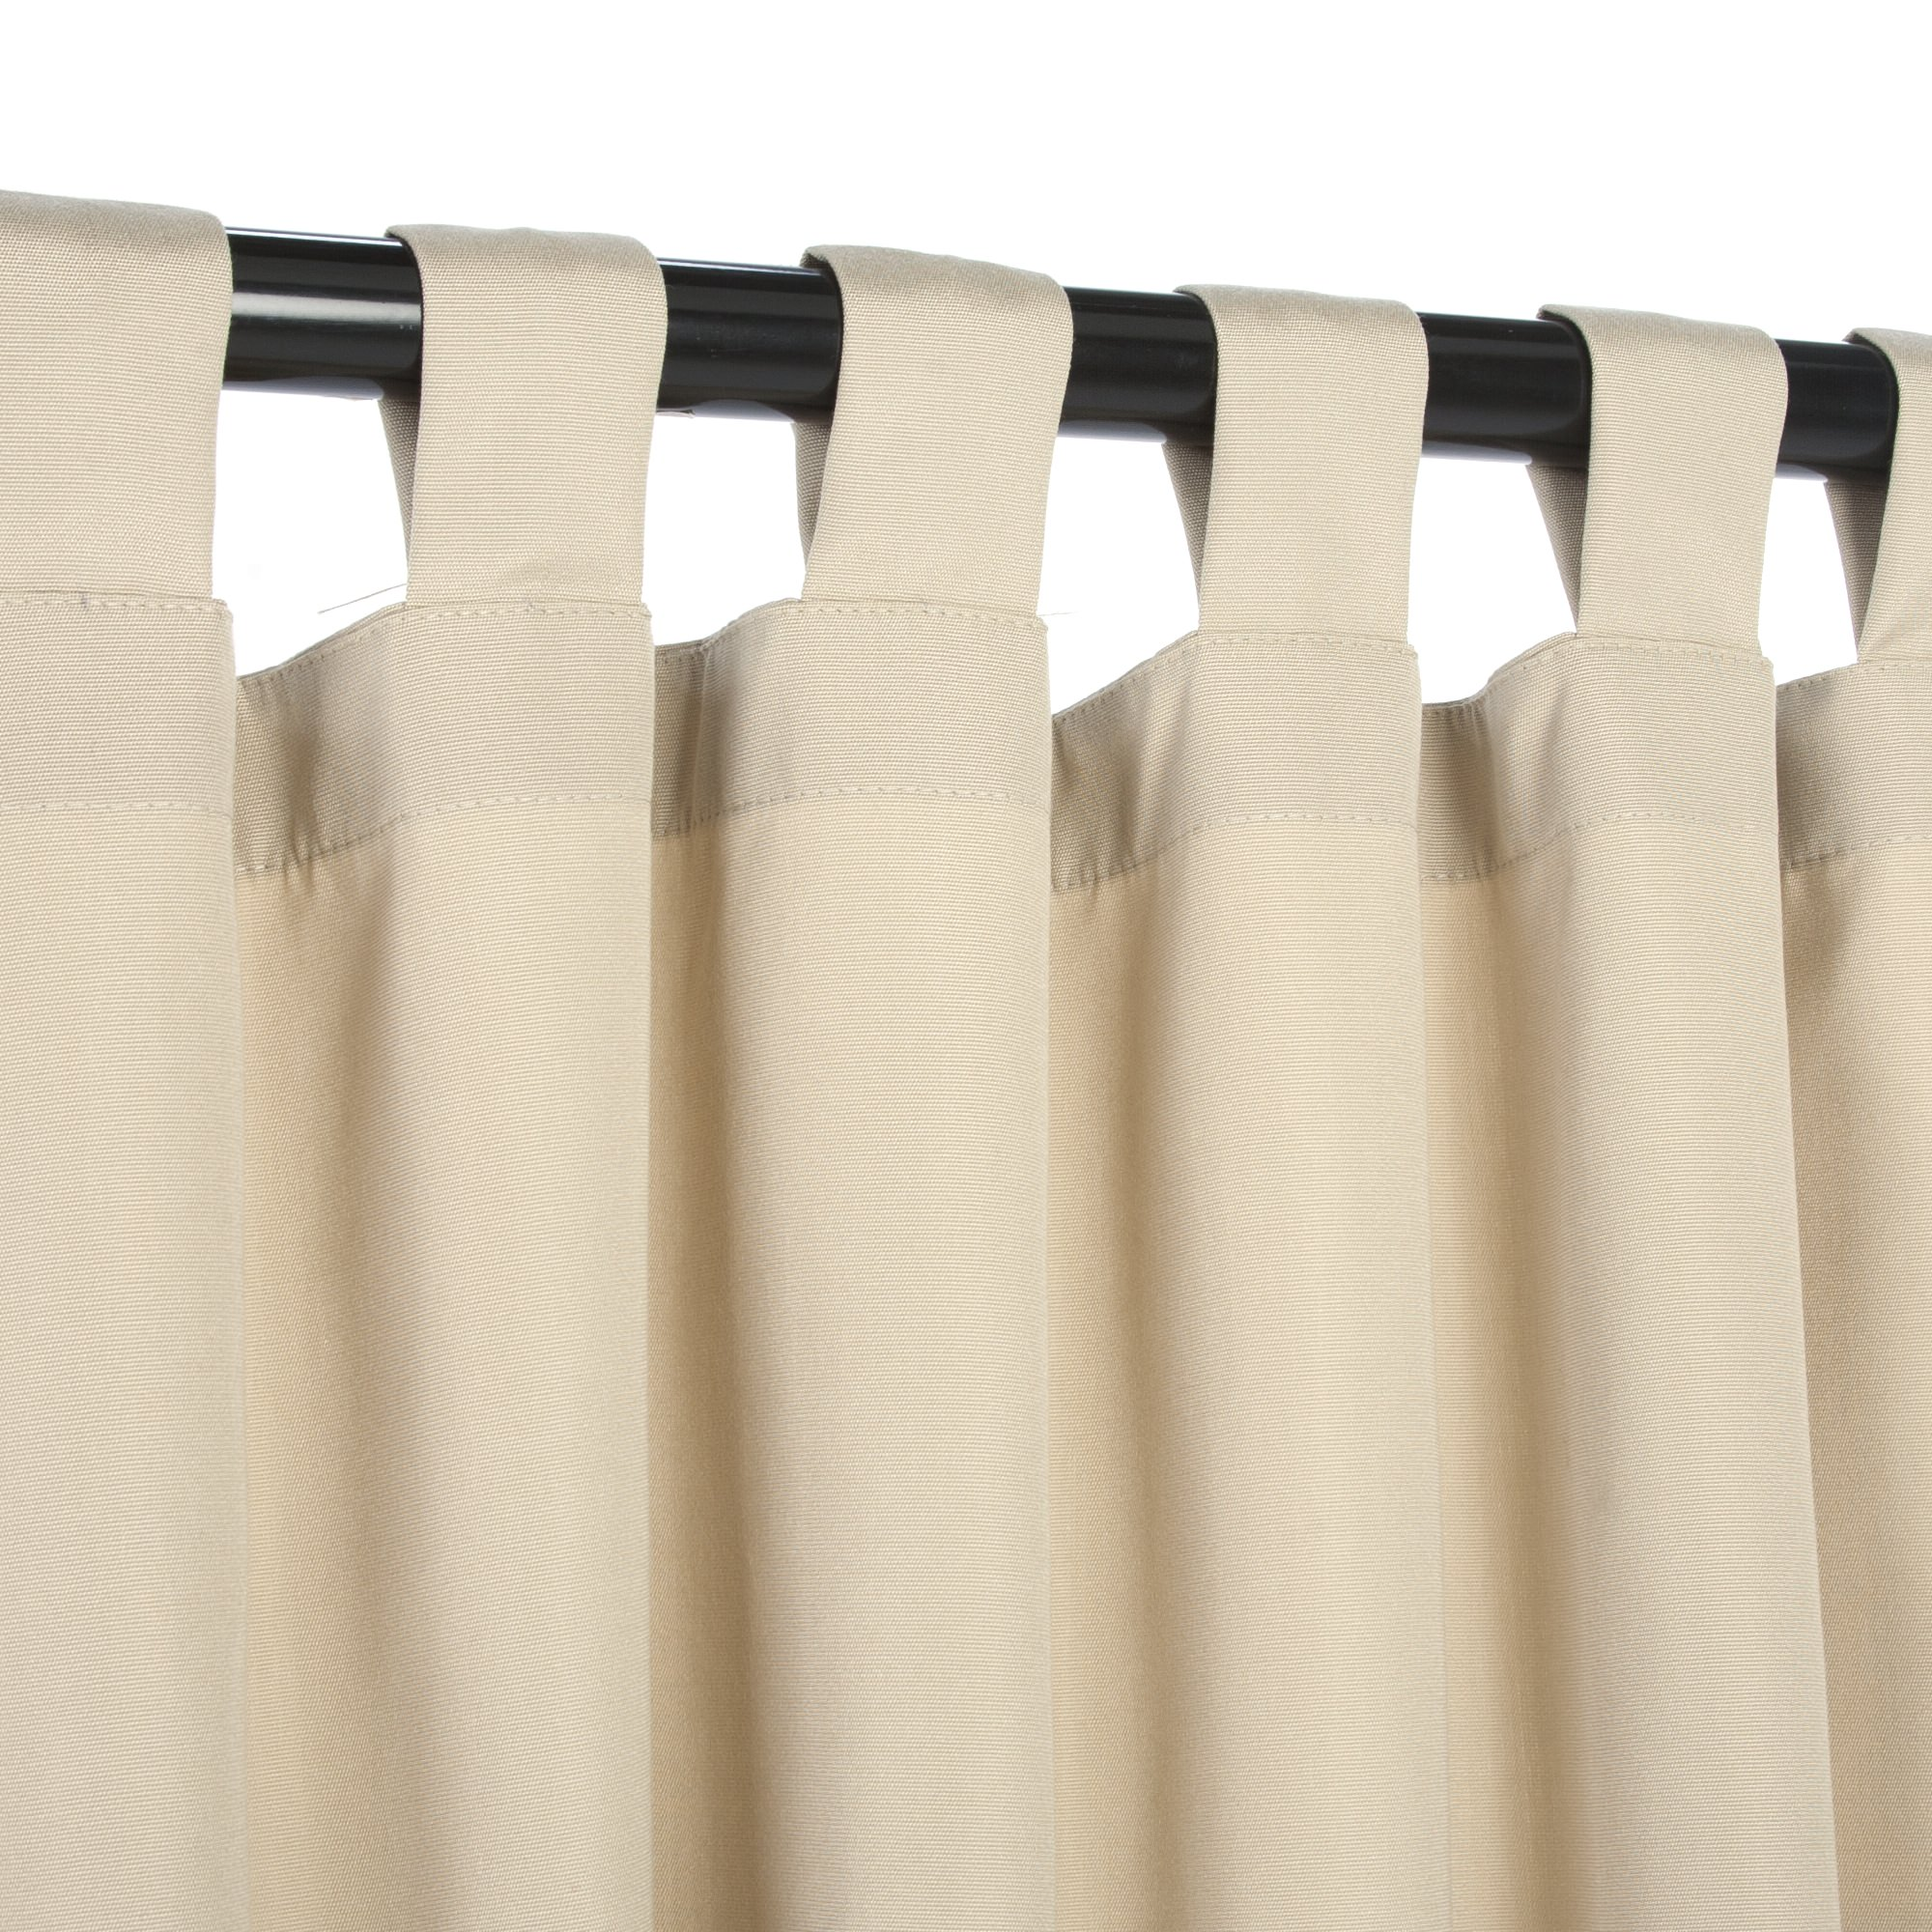 Sunbrella Canvas Antique Beige Outdoor Curtain With Tabs